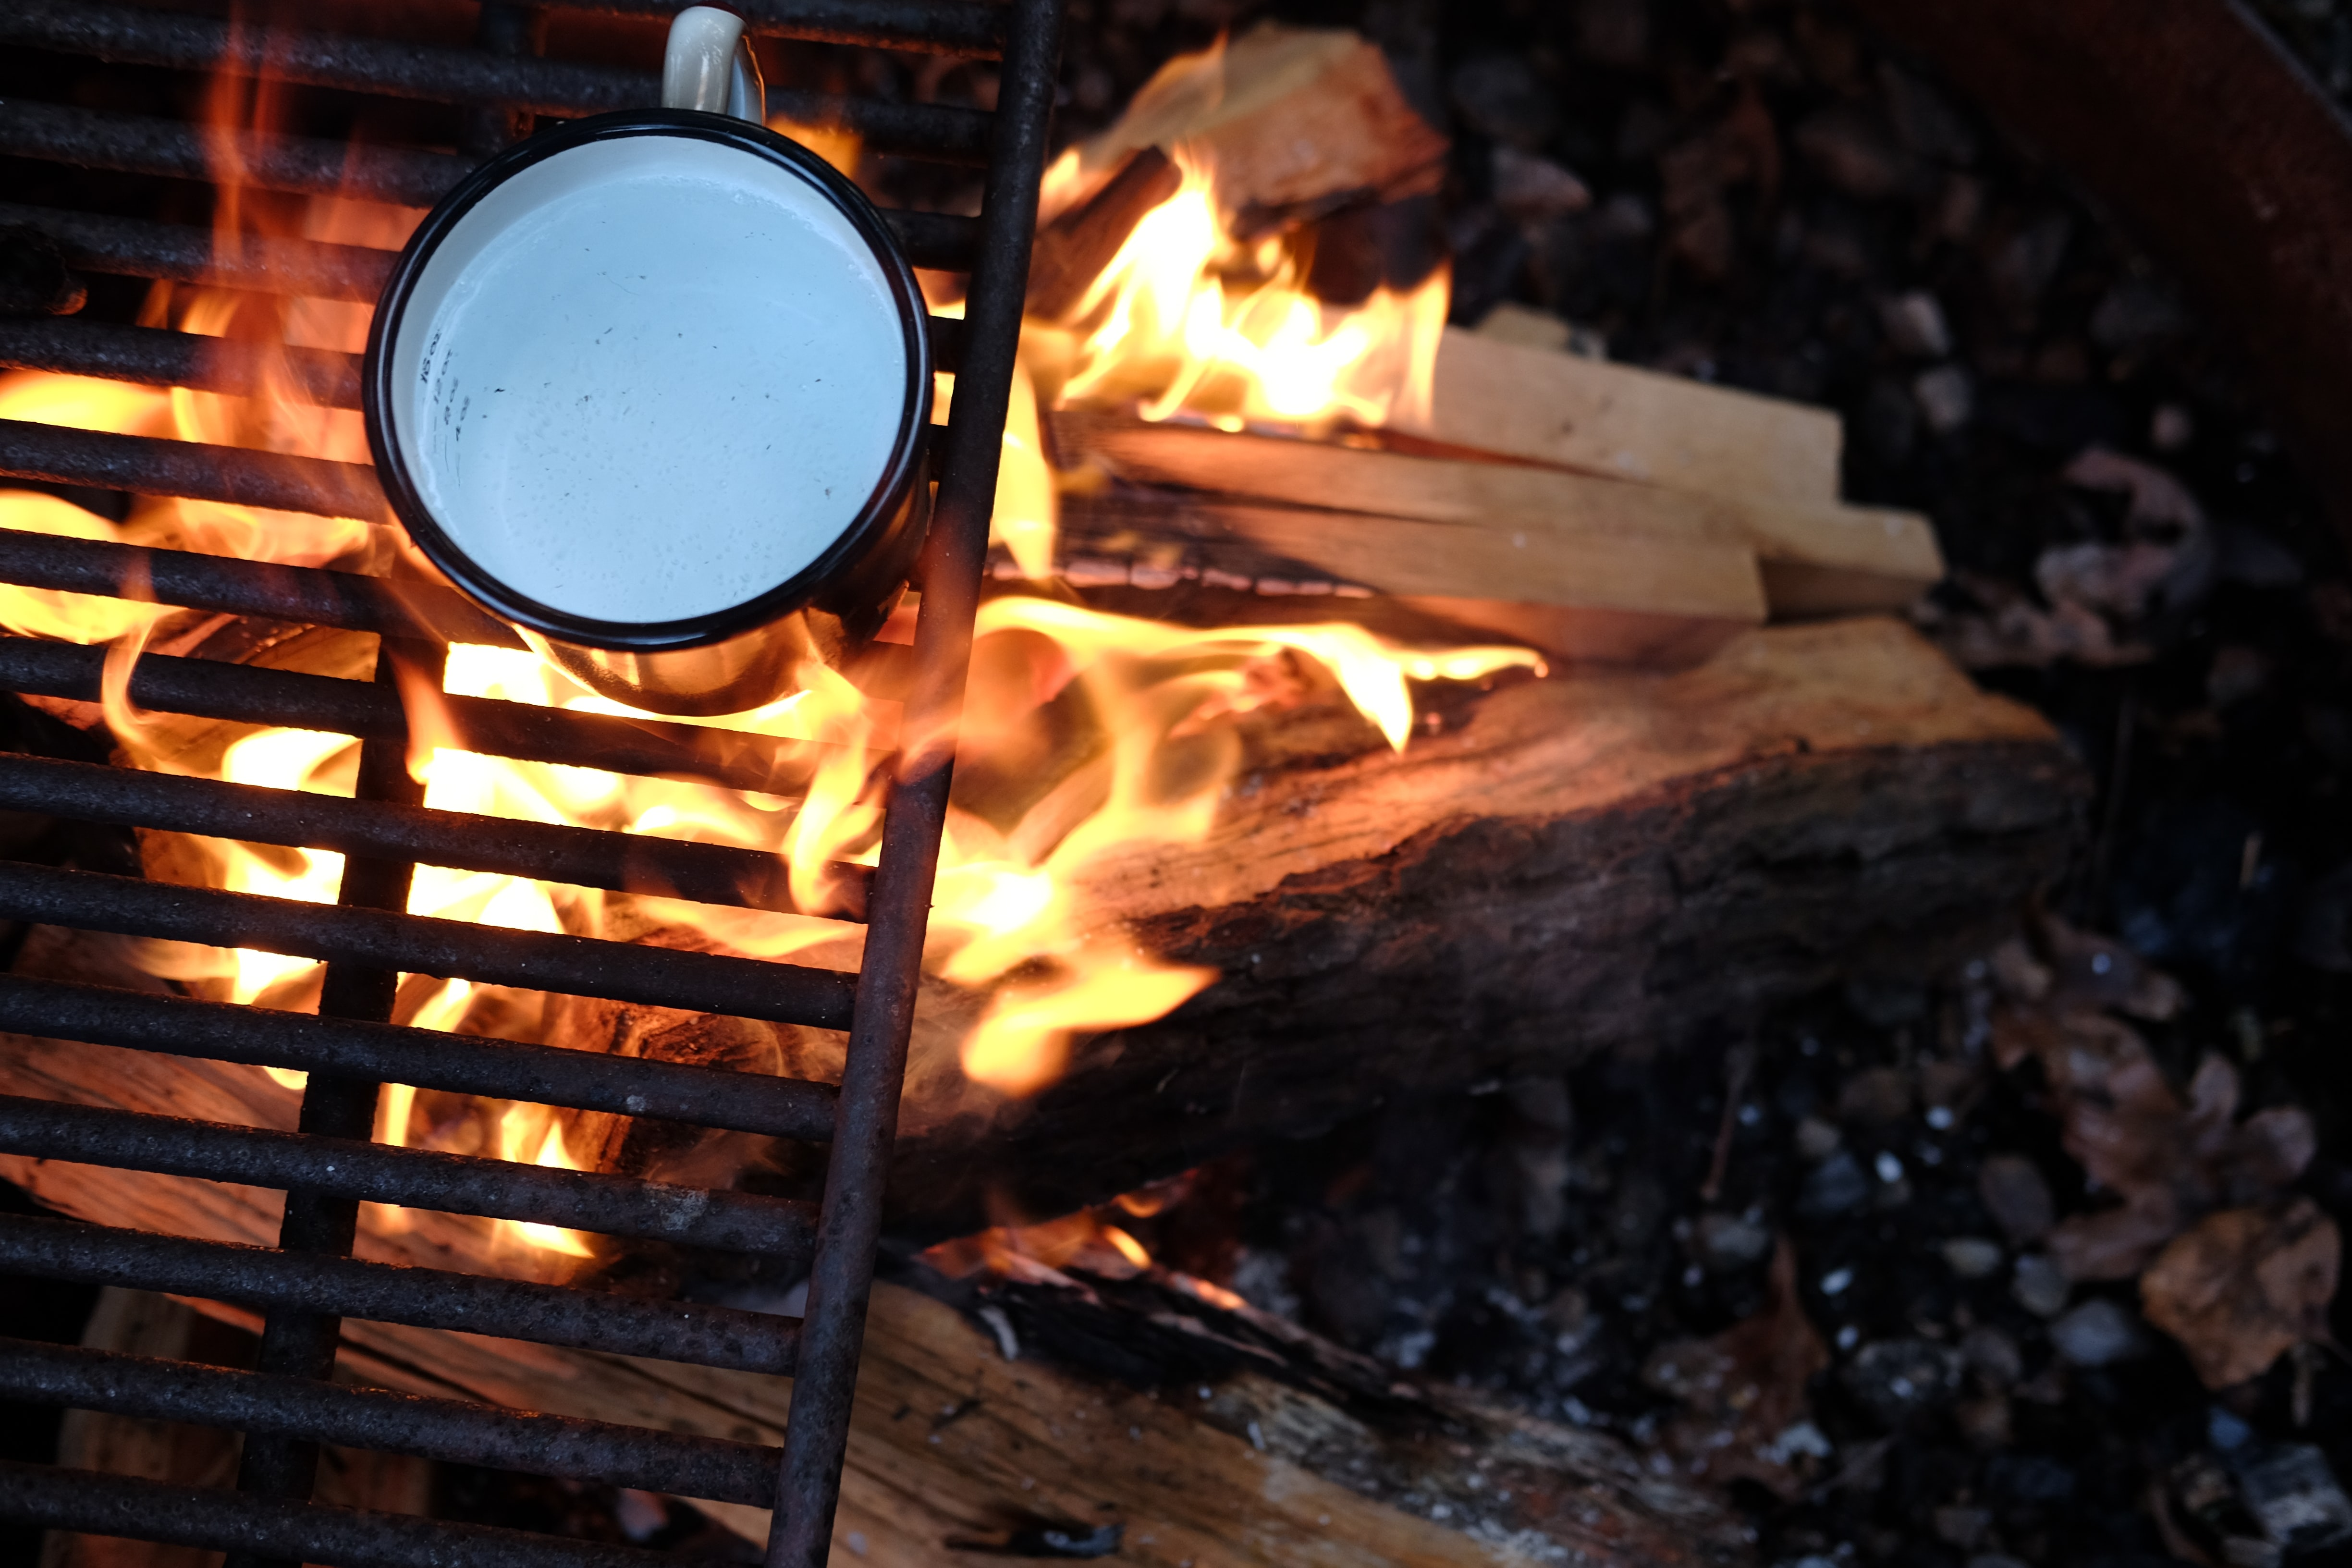 A tin cup of water on a grill above a campfire made of wooden logs in a fire pit